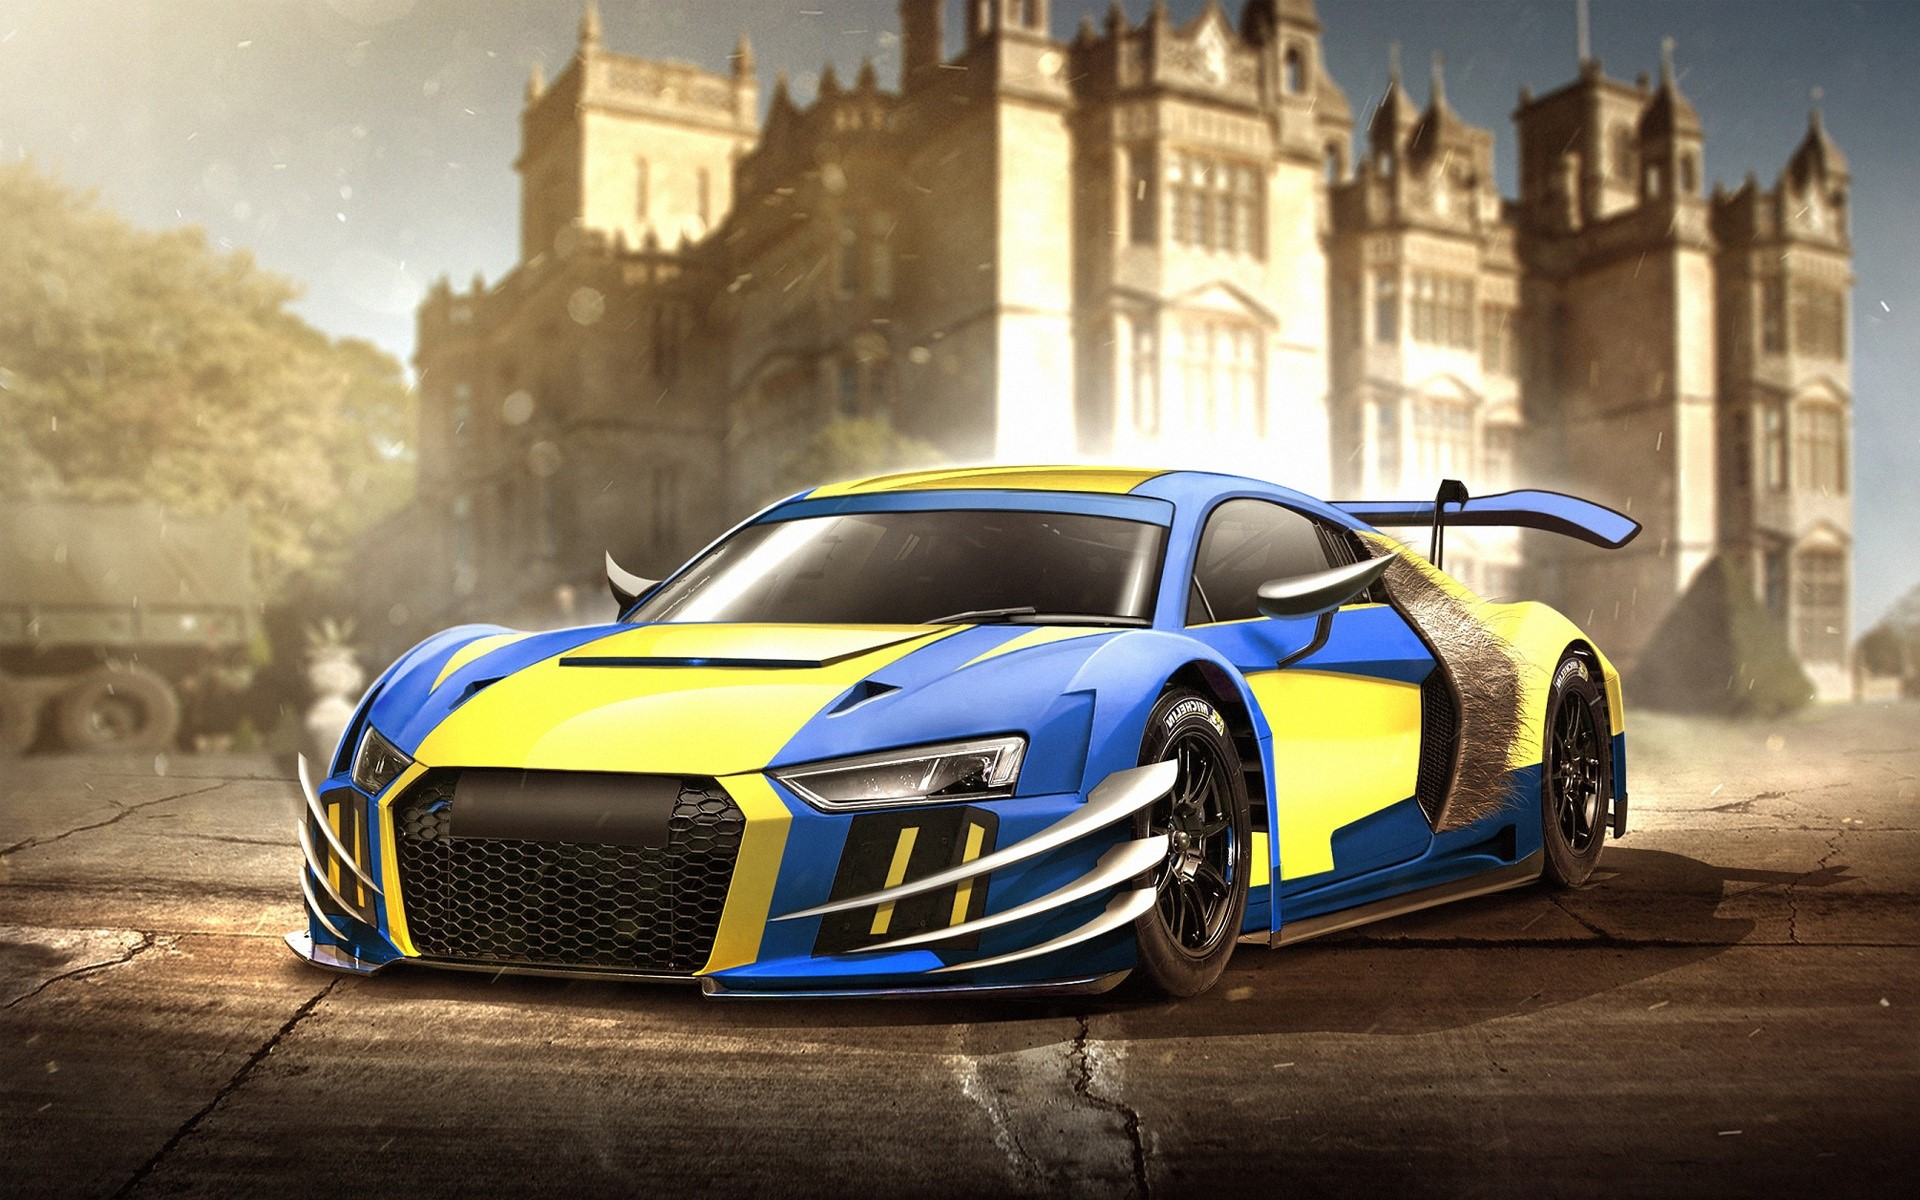 Wallpaper Audi R8 Wolverine Images